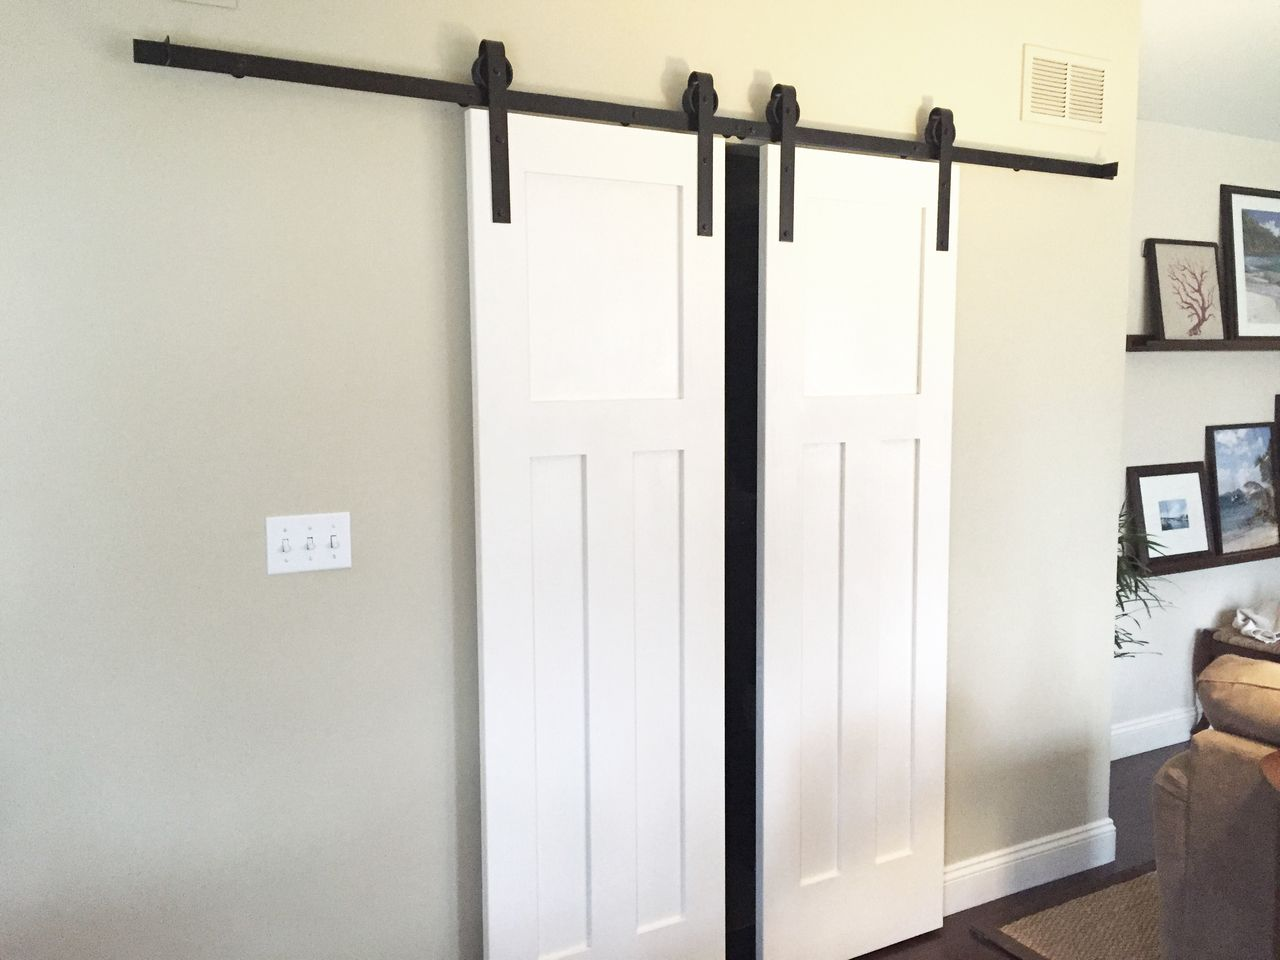 Double Sliding Barn Door Hardware Kit For Two Doors With 12 Feet Track 144 Made In Usa The Barn Door Interior Barn Doors Barn Door Sliding Doors Interior